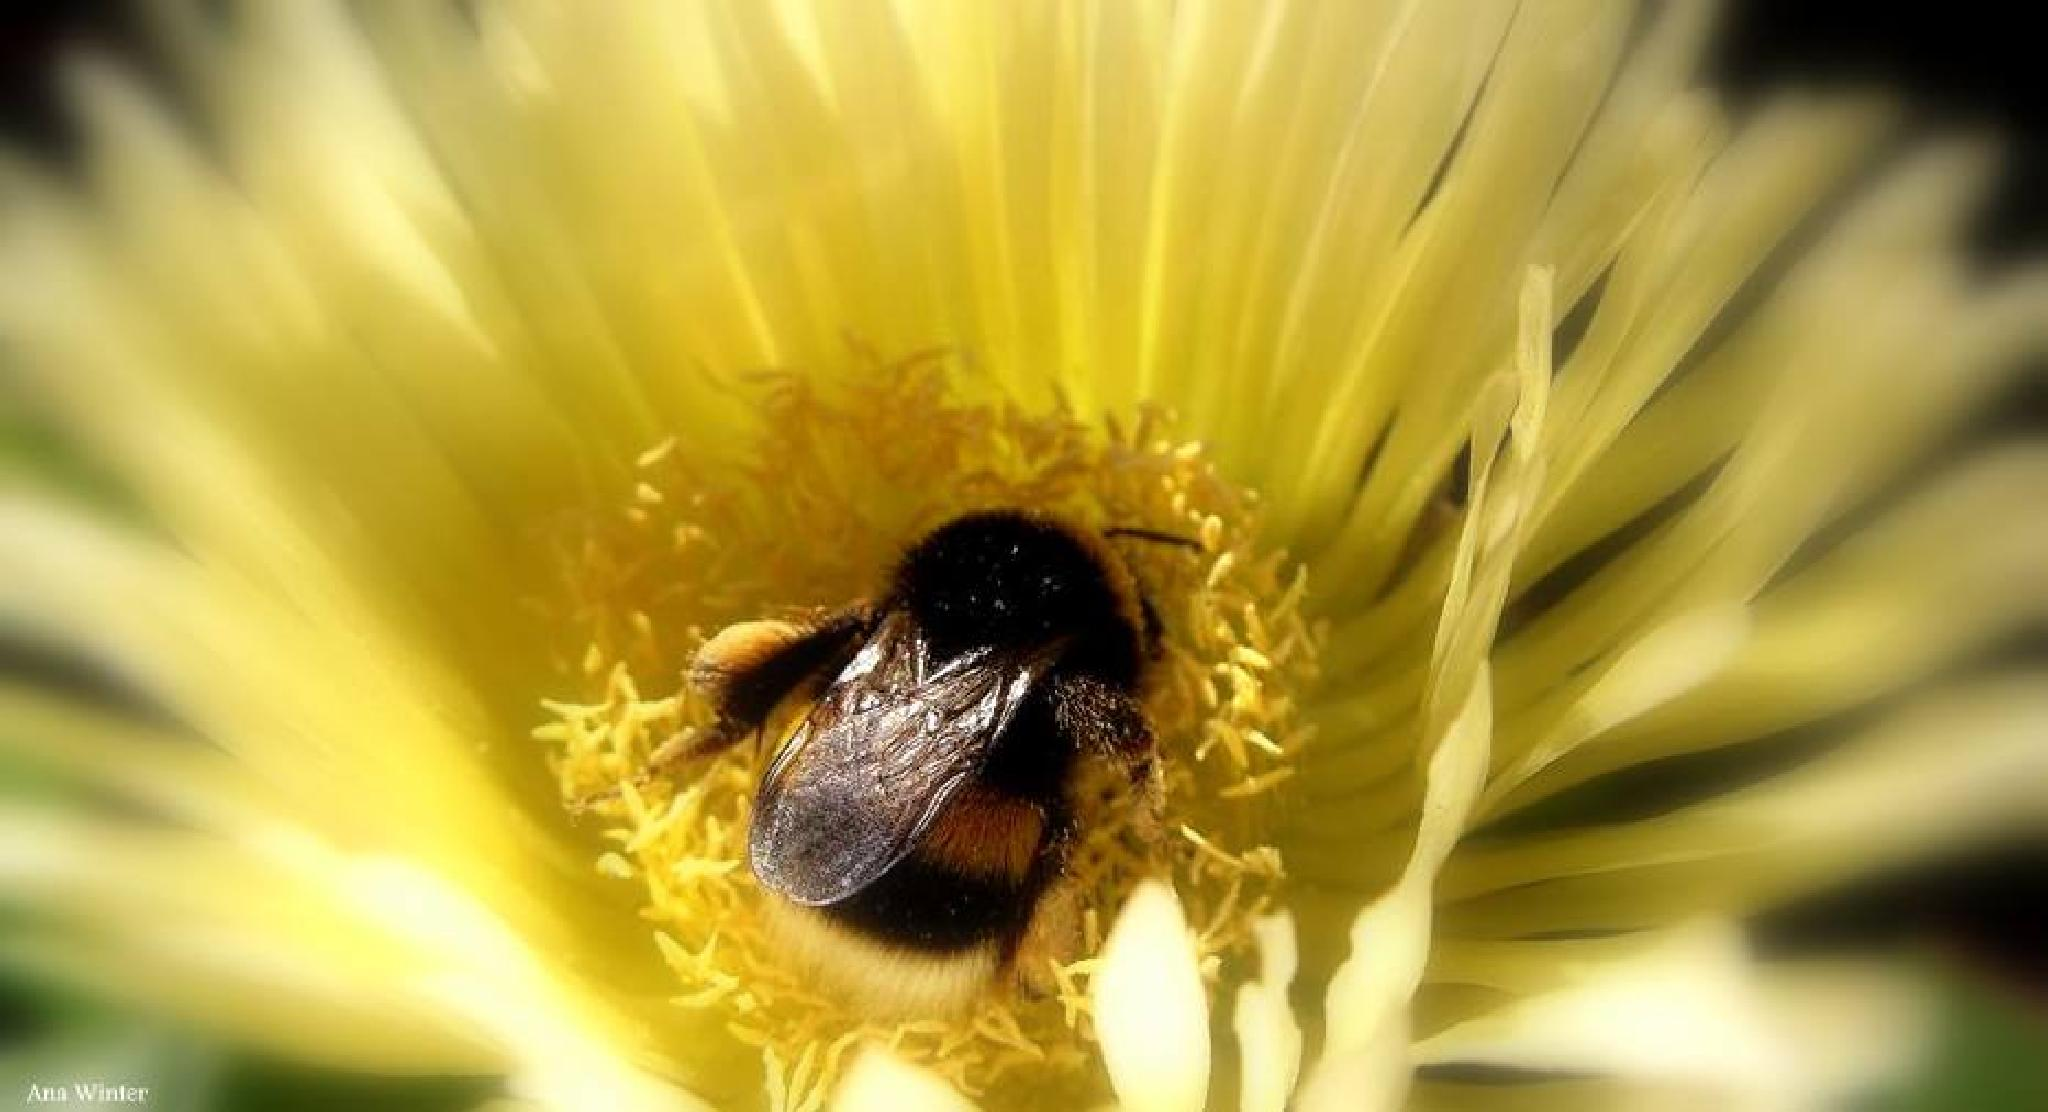 I love Bumblebees by Ana Winter